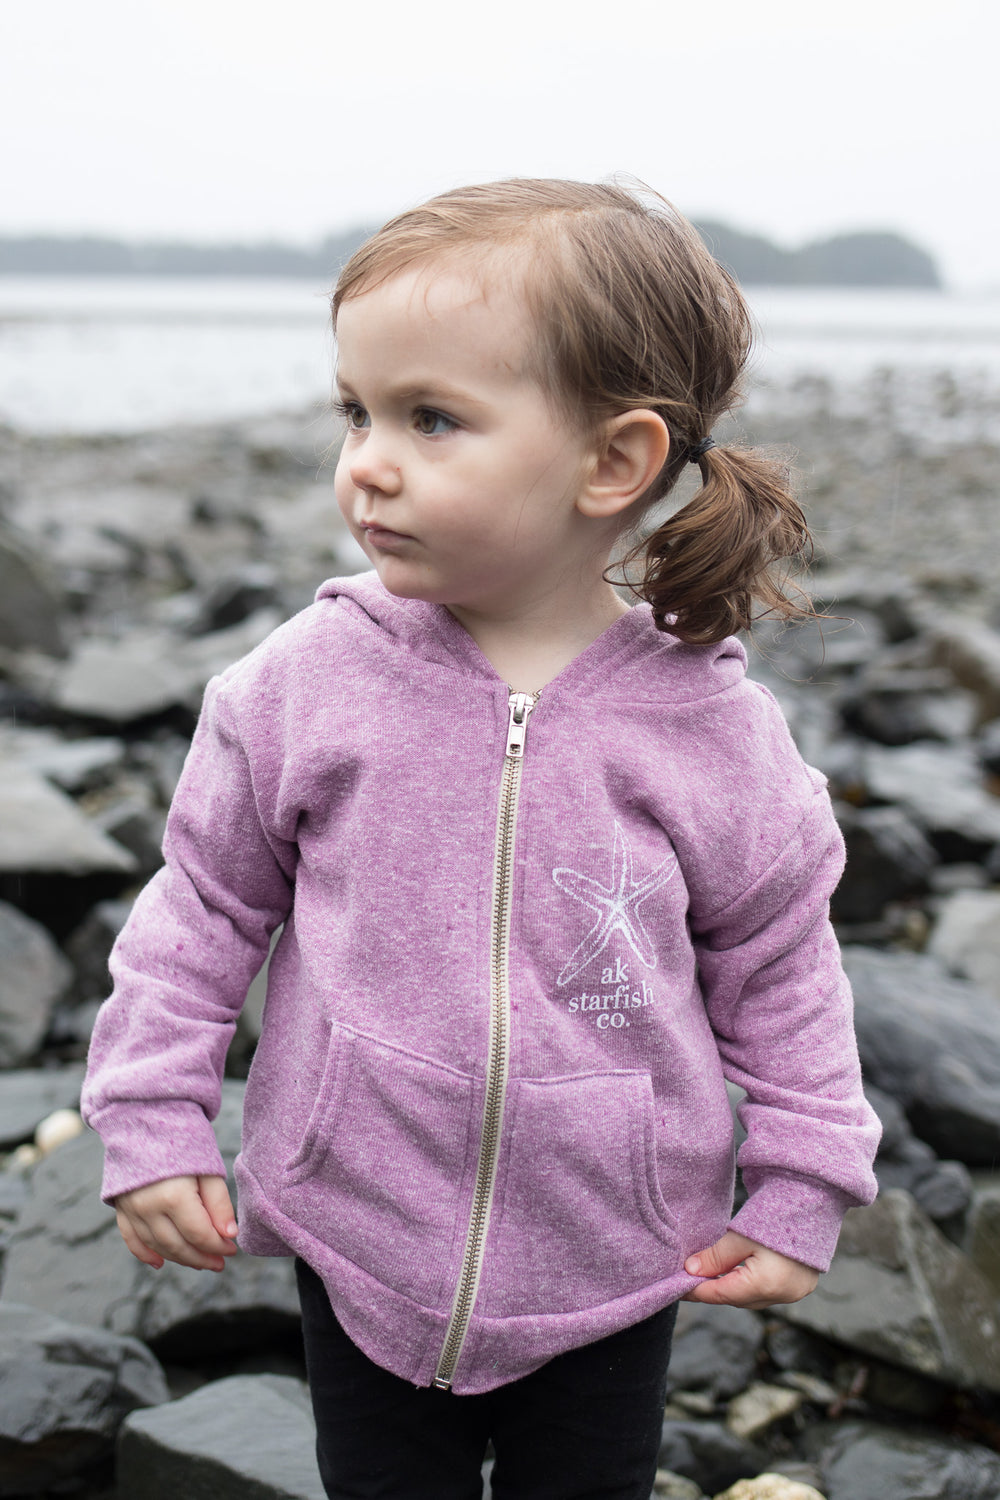 Beach Mussel Shell AK Starfish Co. Children's Triblend Zipped Hoody